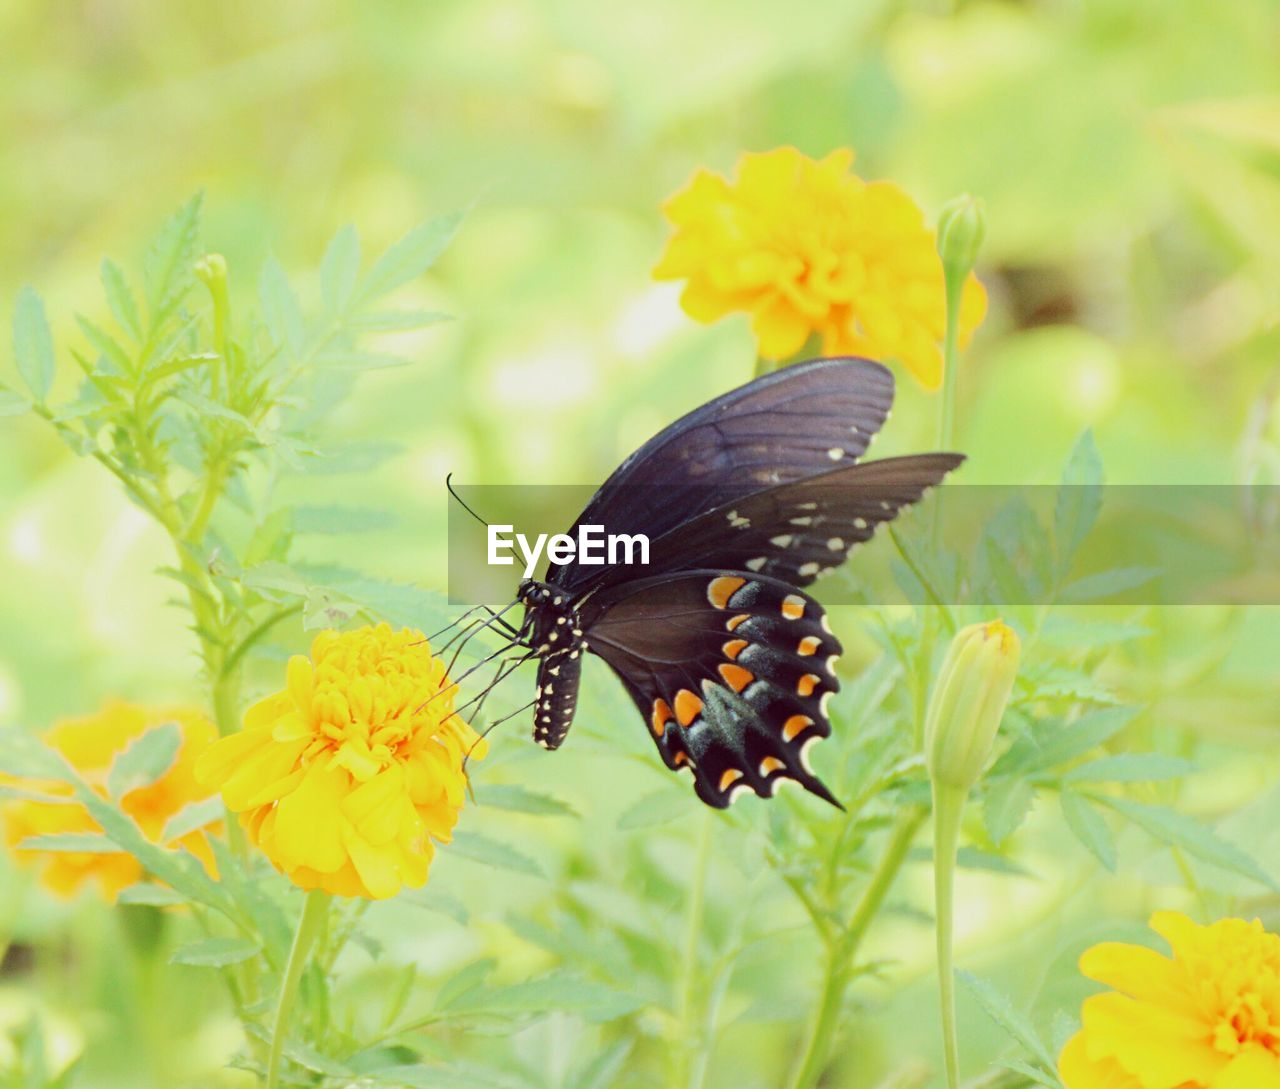 flower, yellow, insect, plant, animals in the wild, animal themes, butterfly - insect, nature, beauty in nature, one animal, petal, growth, butterfly, fragility, no people, freshness, close-up, outdoors, leaf, flower head, animal wildlife, pollination, day